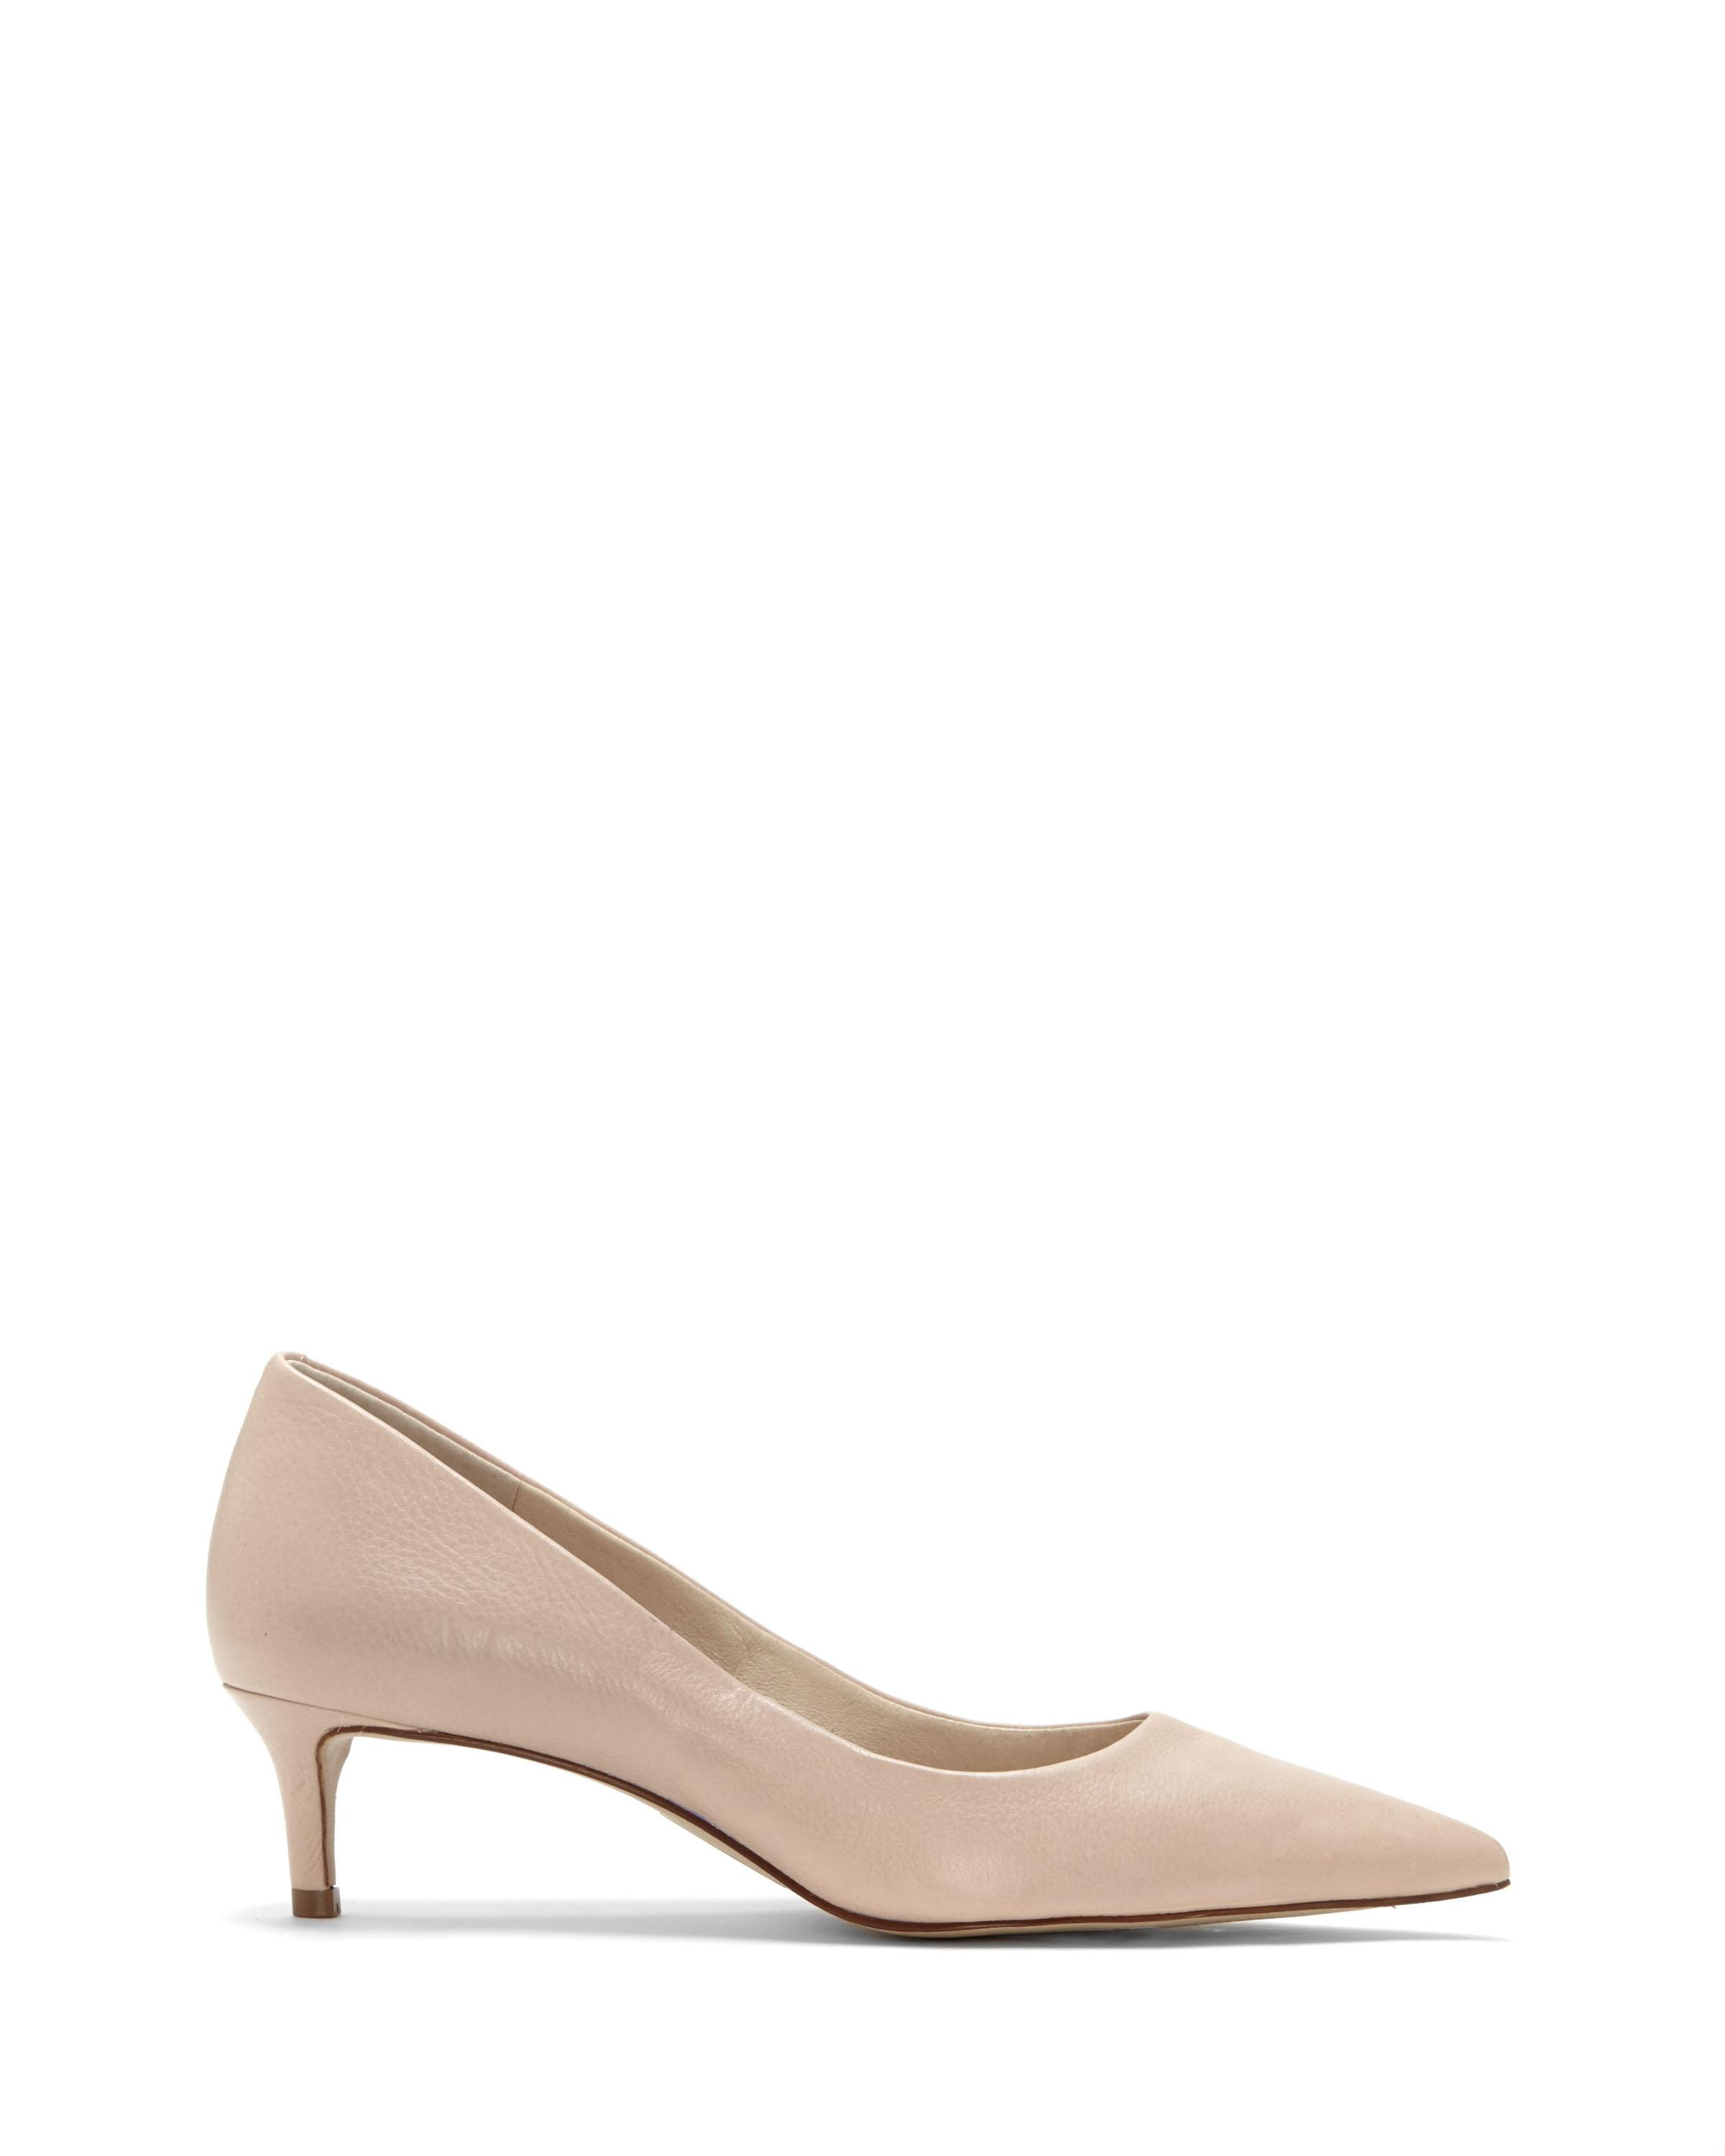 ca32af6c8e5 Lyst - Vince Camuto Louise Et Cie Jacoba – Kitten-heel Pump in Natural